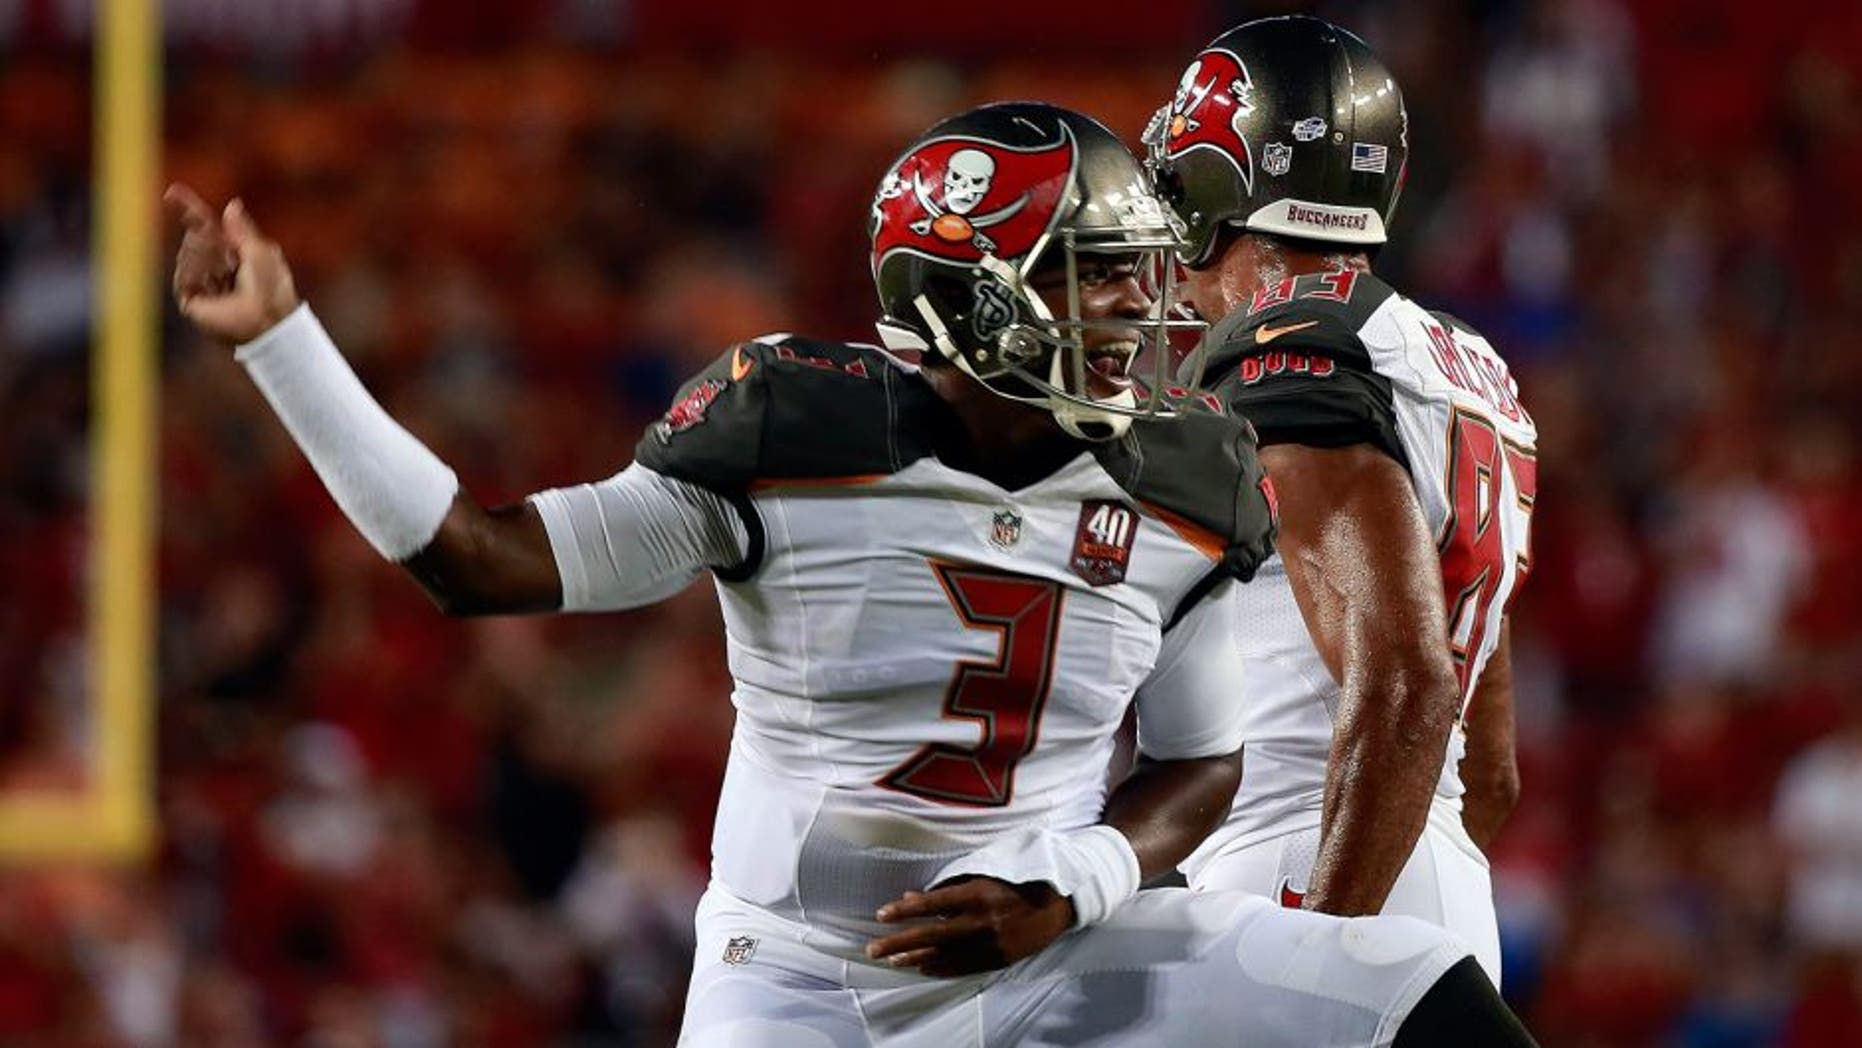 Aug 24, 2015; Tampa, FL, USA; Tampa Bay Buccaneers quarterback Jameis Winston (3) celebrates after he scored a touchdown against the Cincinnati Bengals during the first quarter at Raymond James Stadium. Mandatory Credit: Kim Klement-USA TODAY Sports